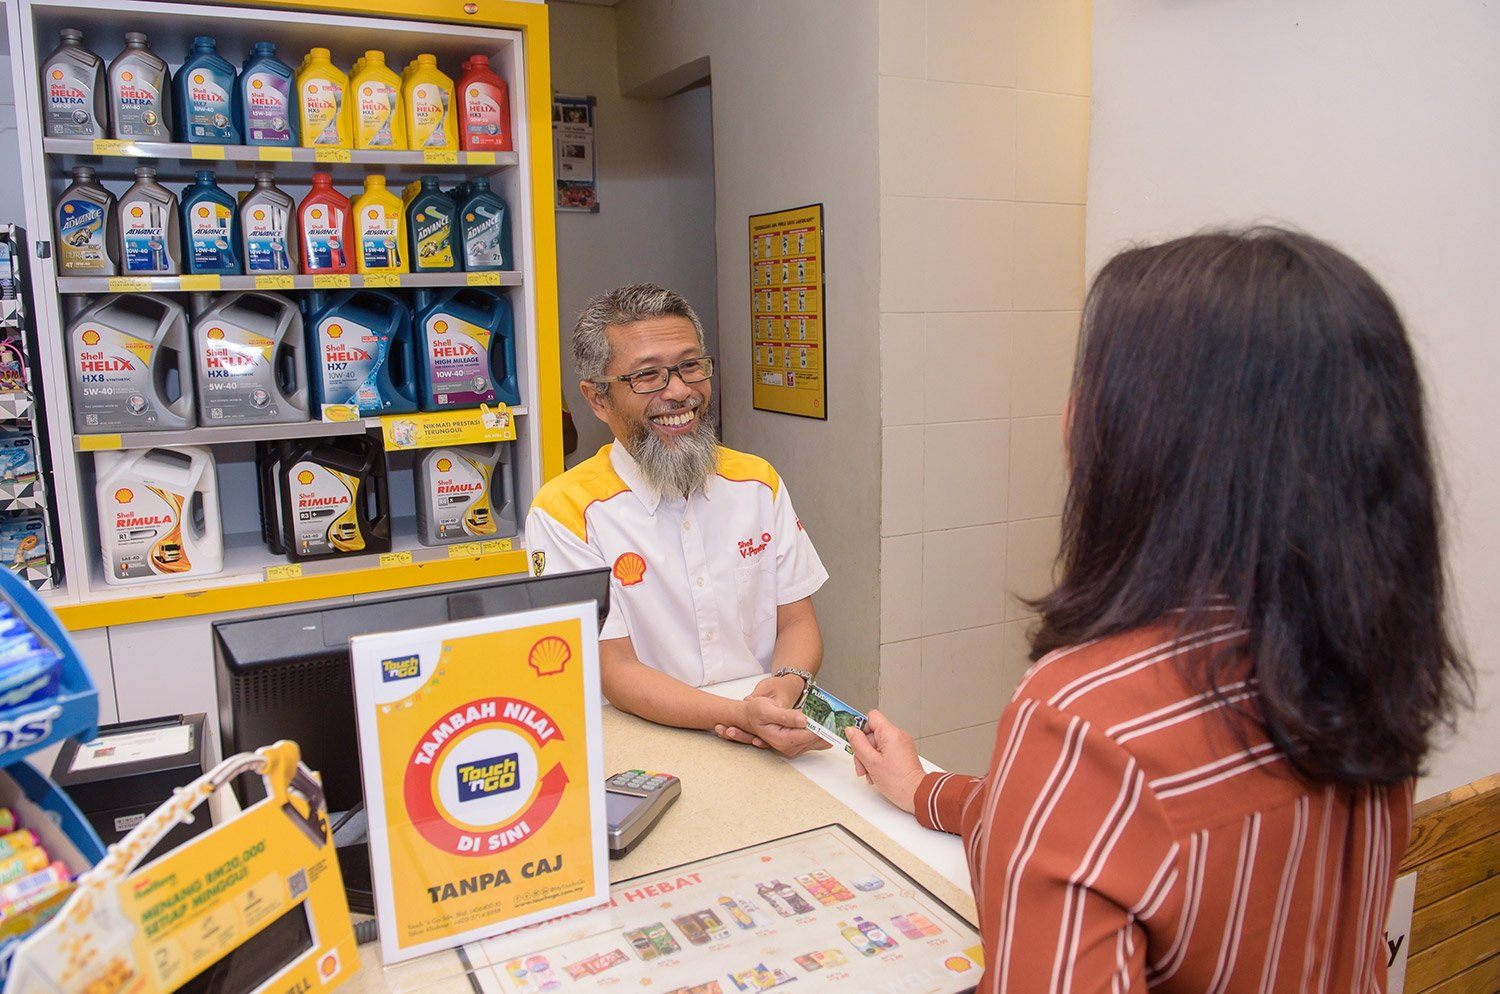 TOUCH 'N GO TOP-UP CHARGES WAIVED AT ALL SHELL STATIONS ALONG THE PLUS AND EAST-COAST EXPRESSWAYS